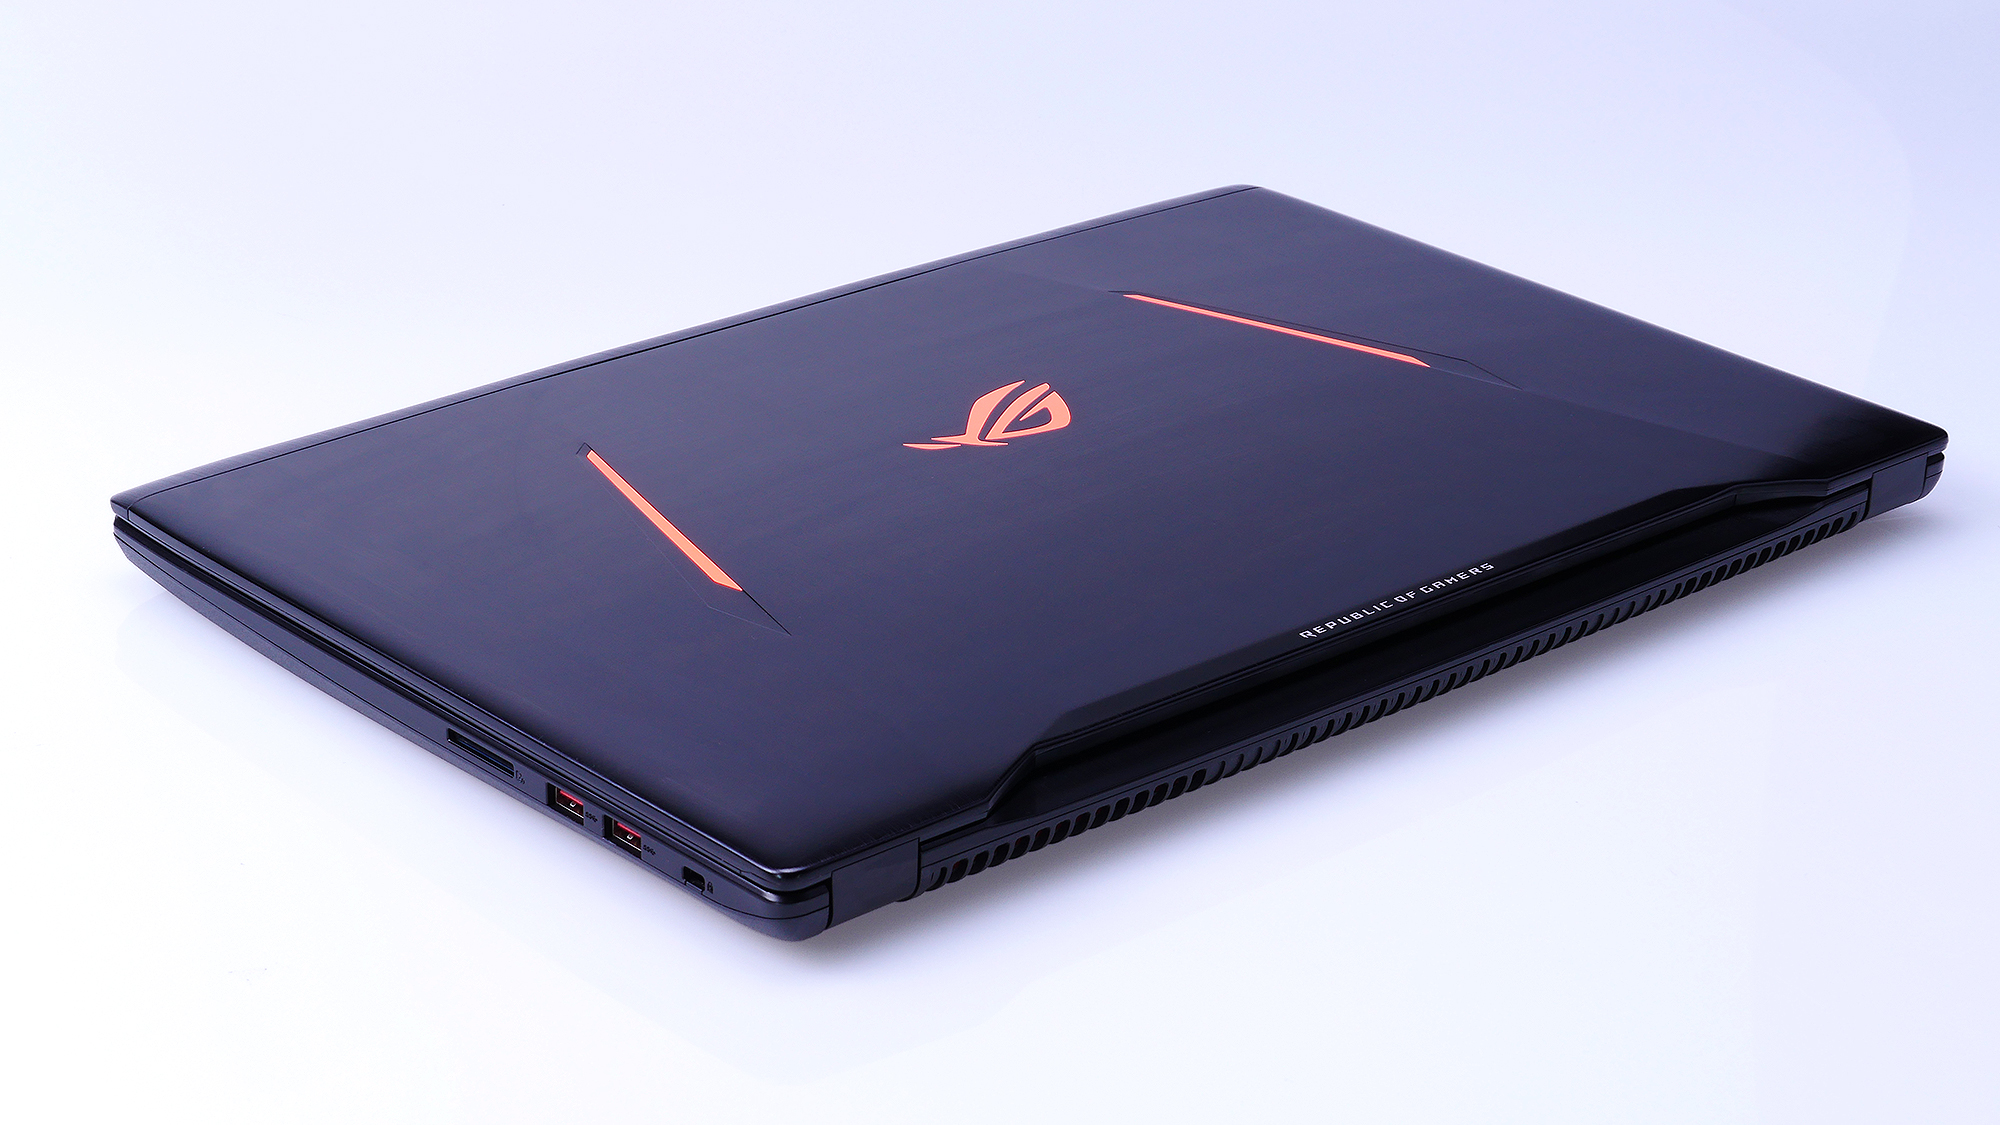 1-ROG-Strix-GL702-laptop-top-back